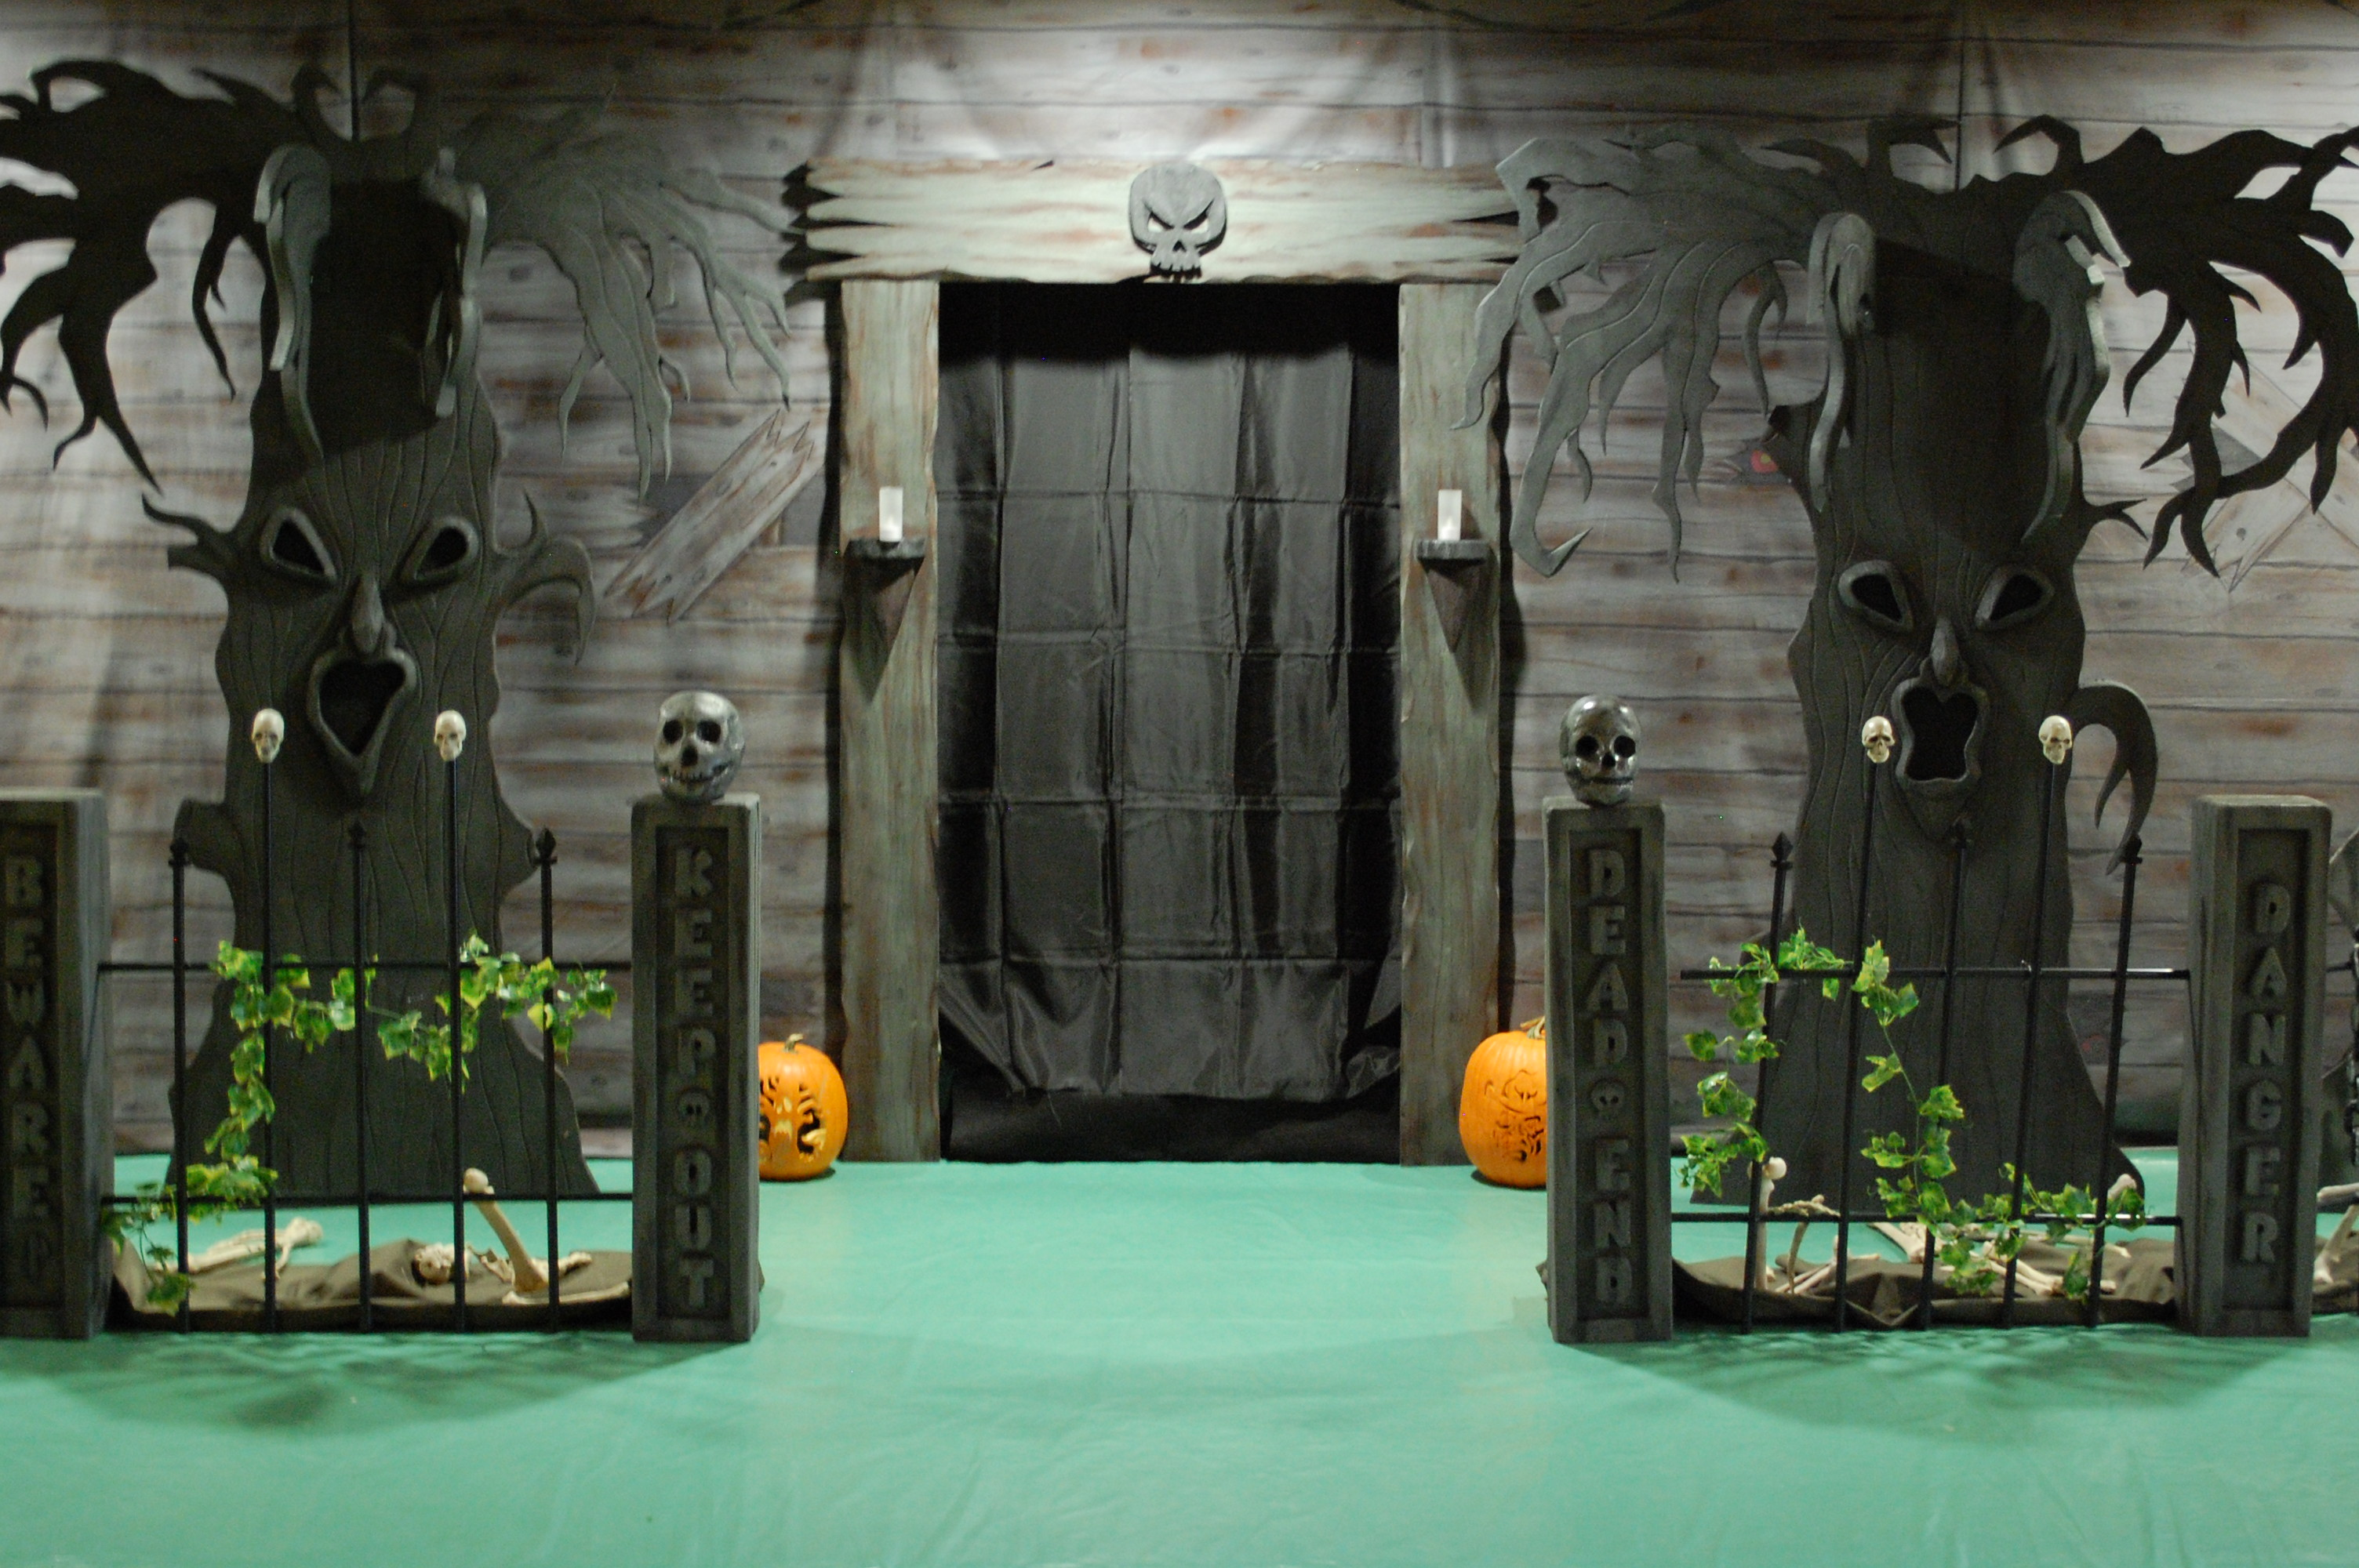 Remarkable Haunted House Ideas 3008 x 2000 · 1284 kB · jpeg